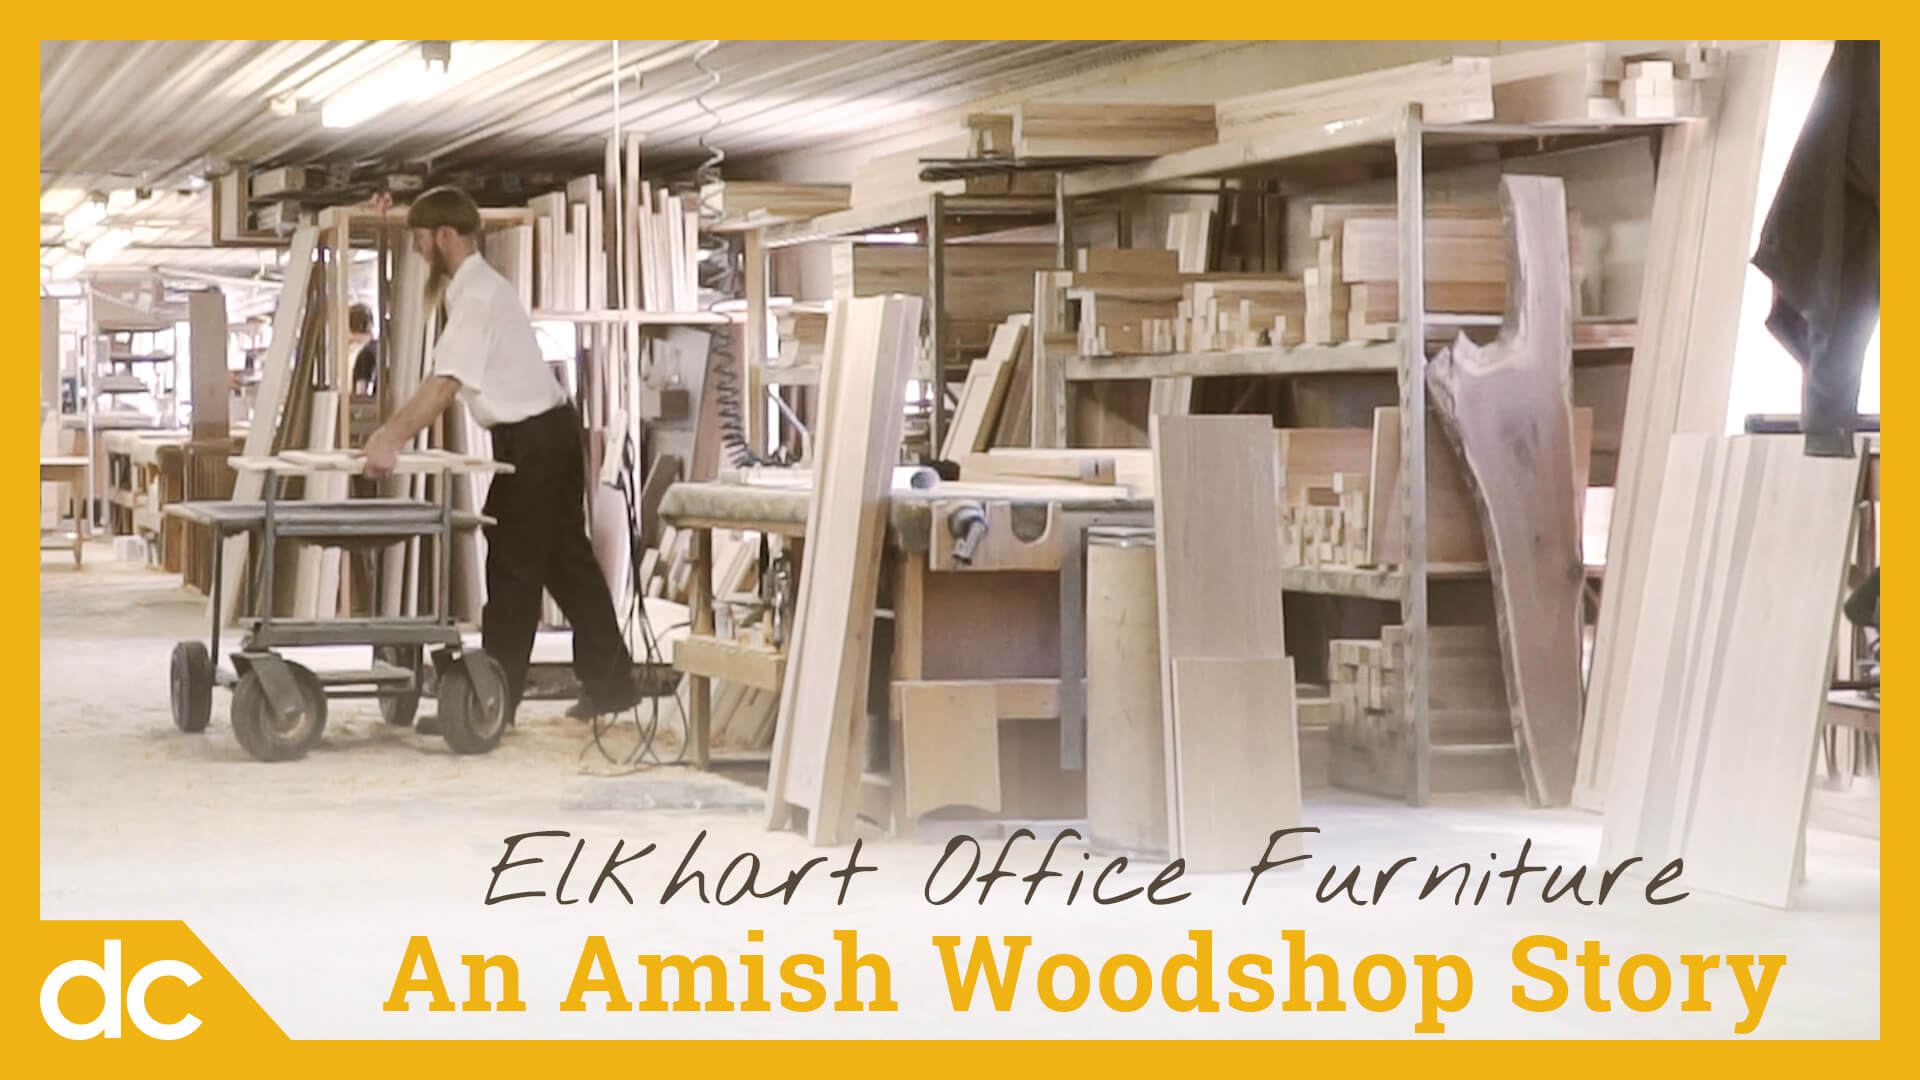 Elkhart Office Furniture: An Amish Woodshop Story Video Title